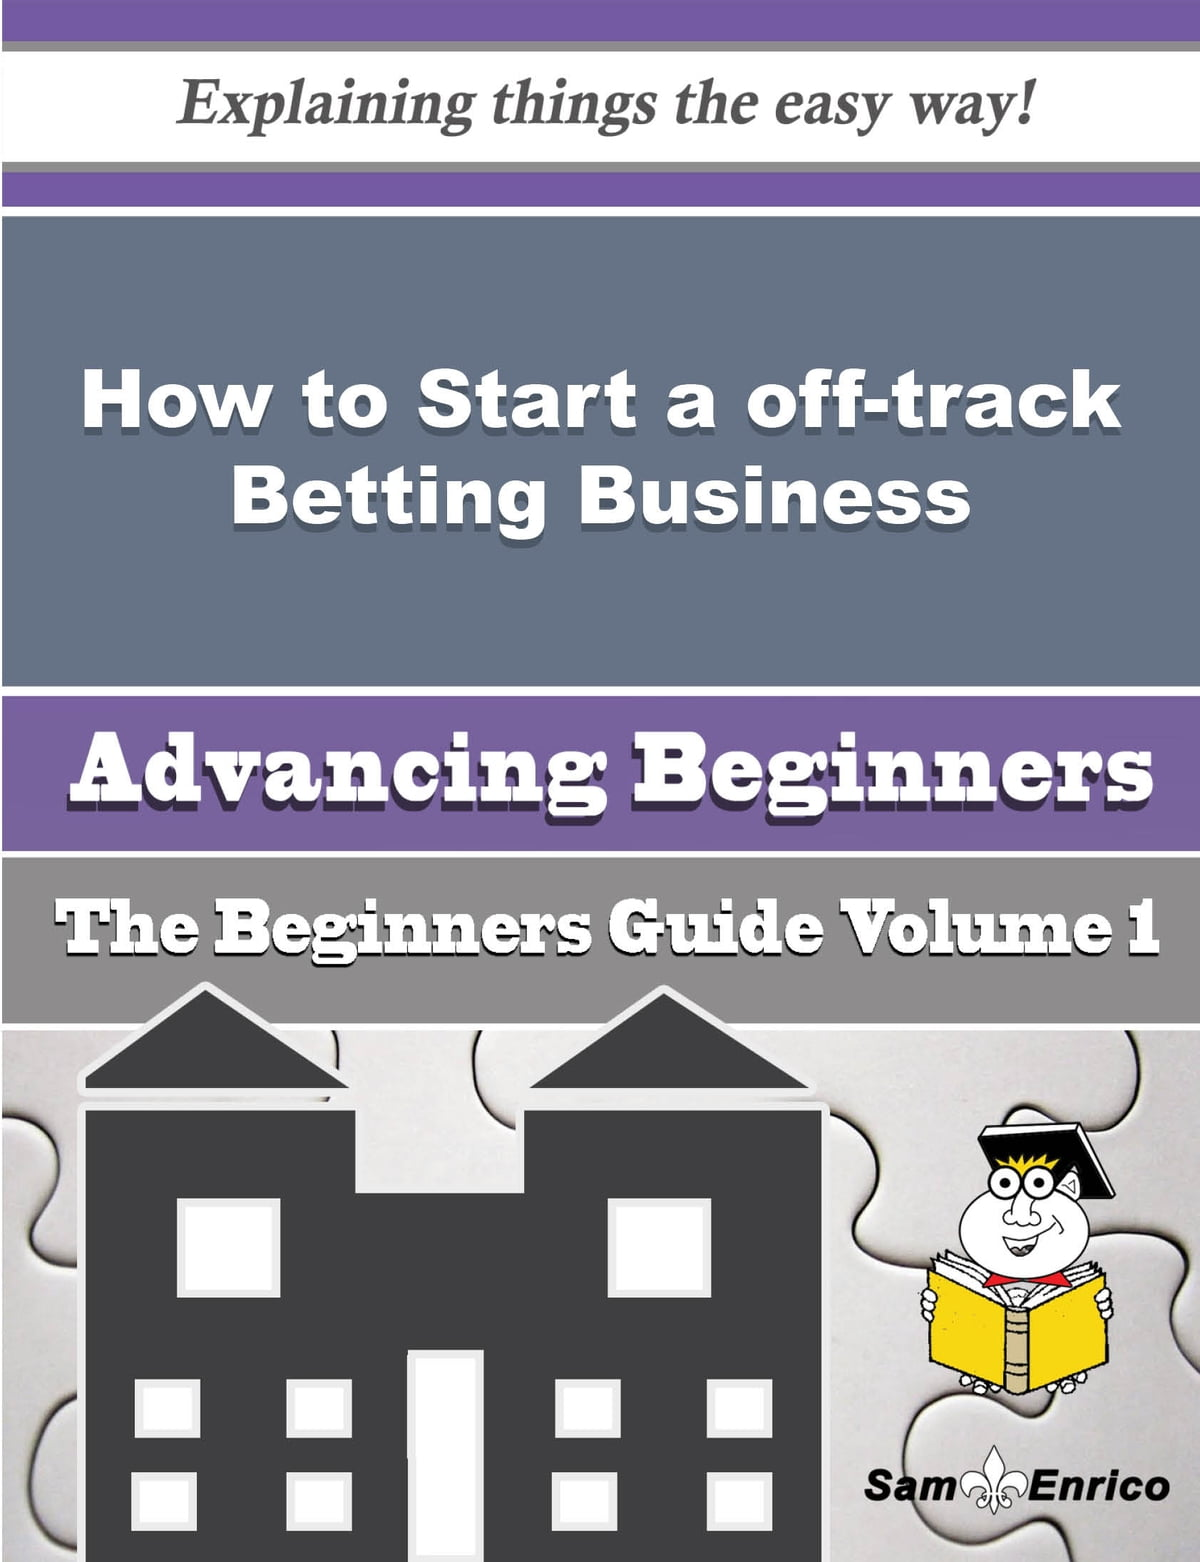 Otb betting guide solid sports bets on twitter review